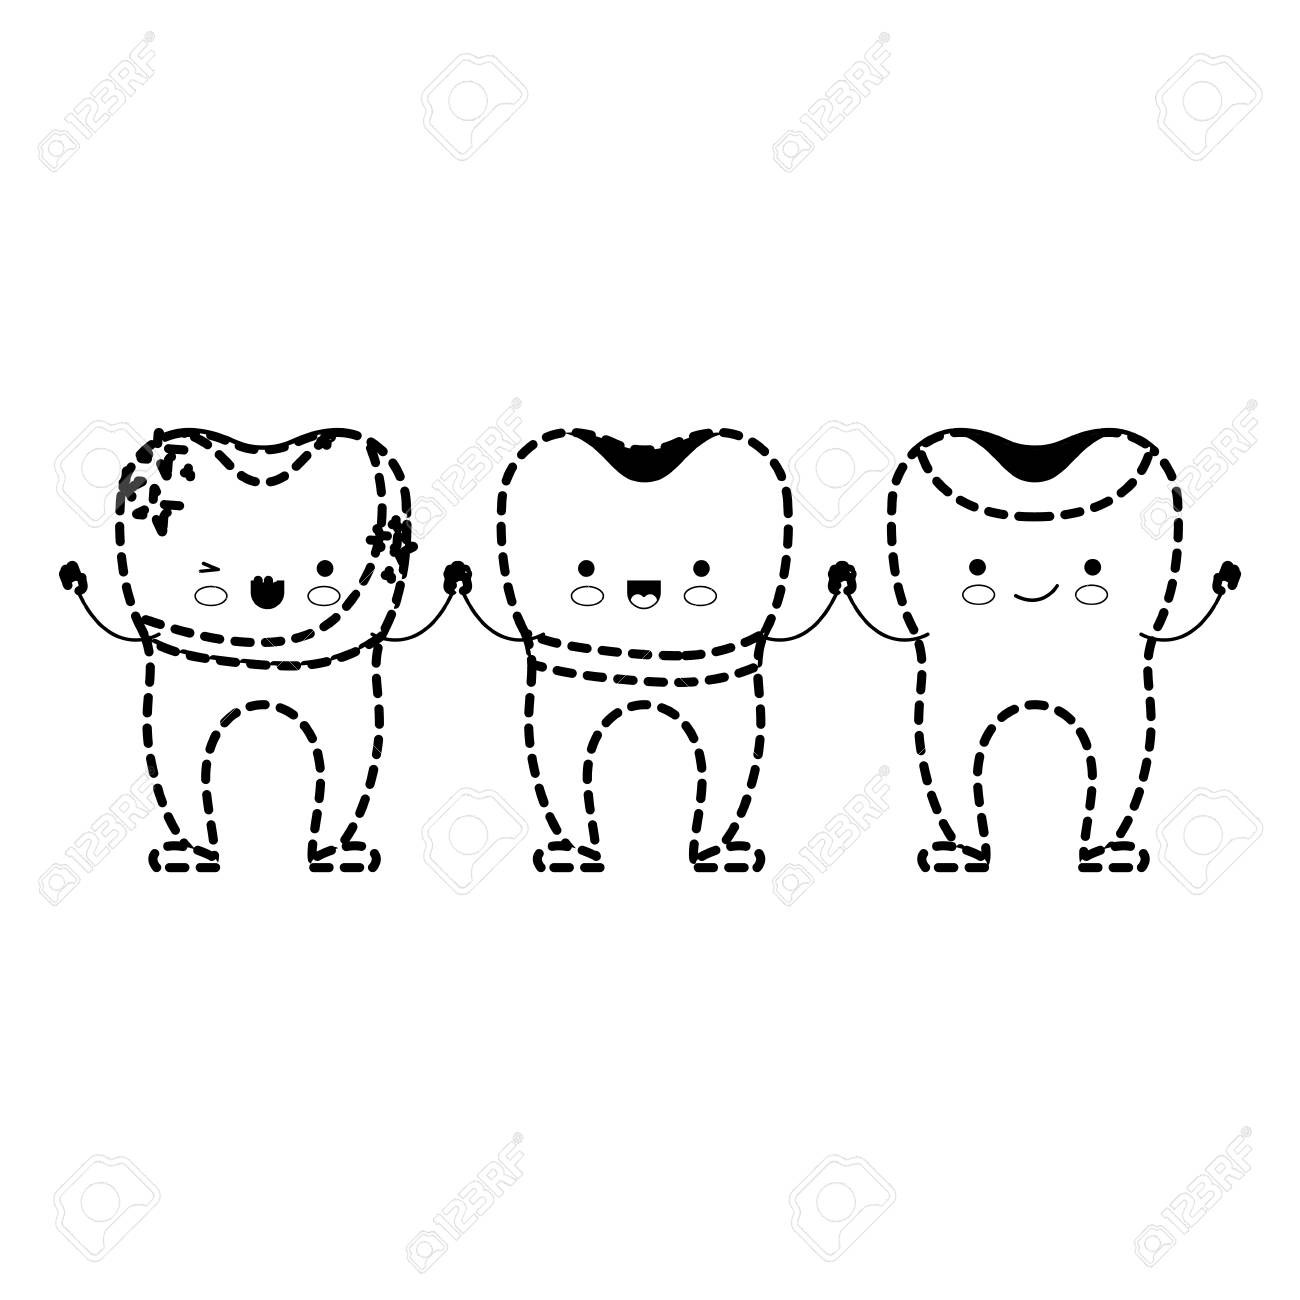 Dental Crown And Implant And Restored Teeth Cartoon Holding Hands Royalty Free Cliparts Vectors And Stock Illustration Image 88469477 Select up to 25000 episode for free! dental crown and implant and restored teeth cartoon holding hands